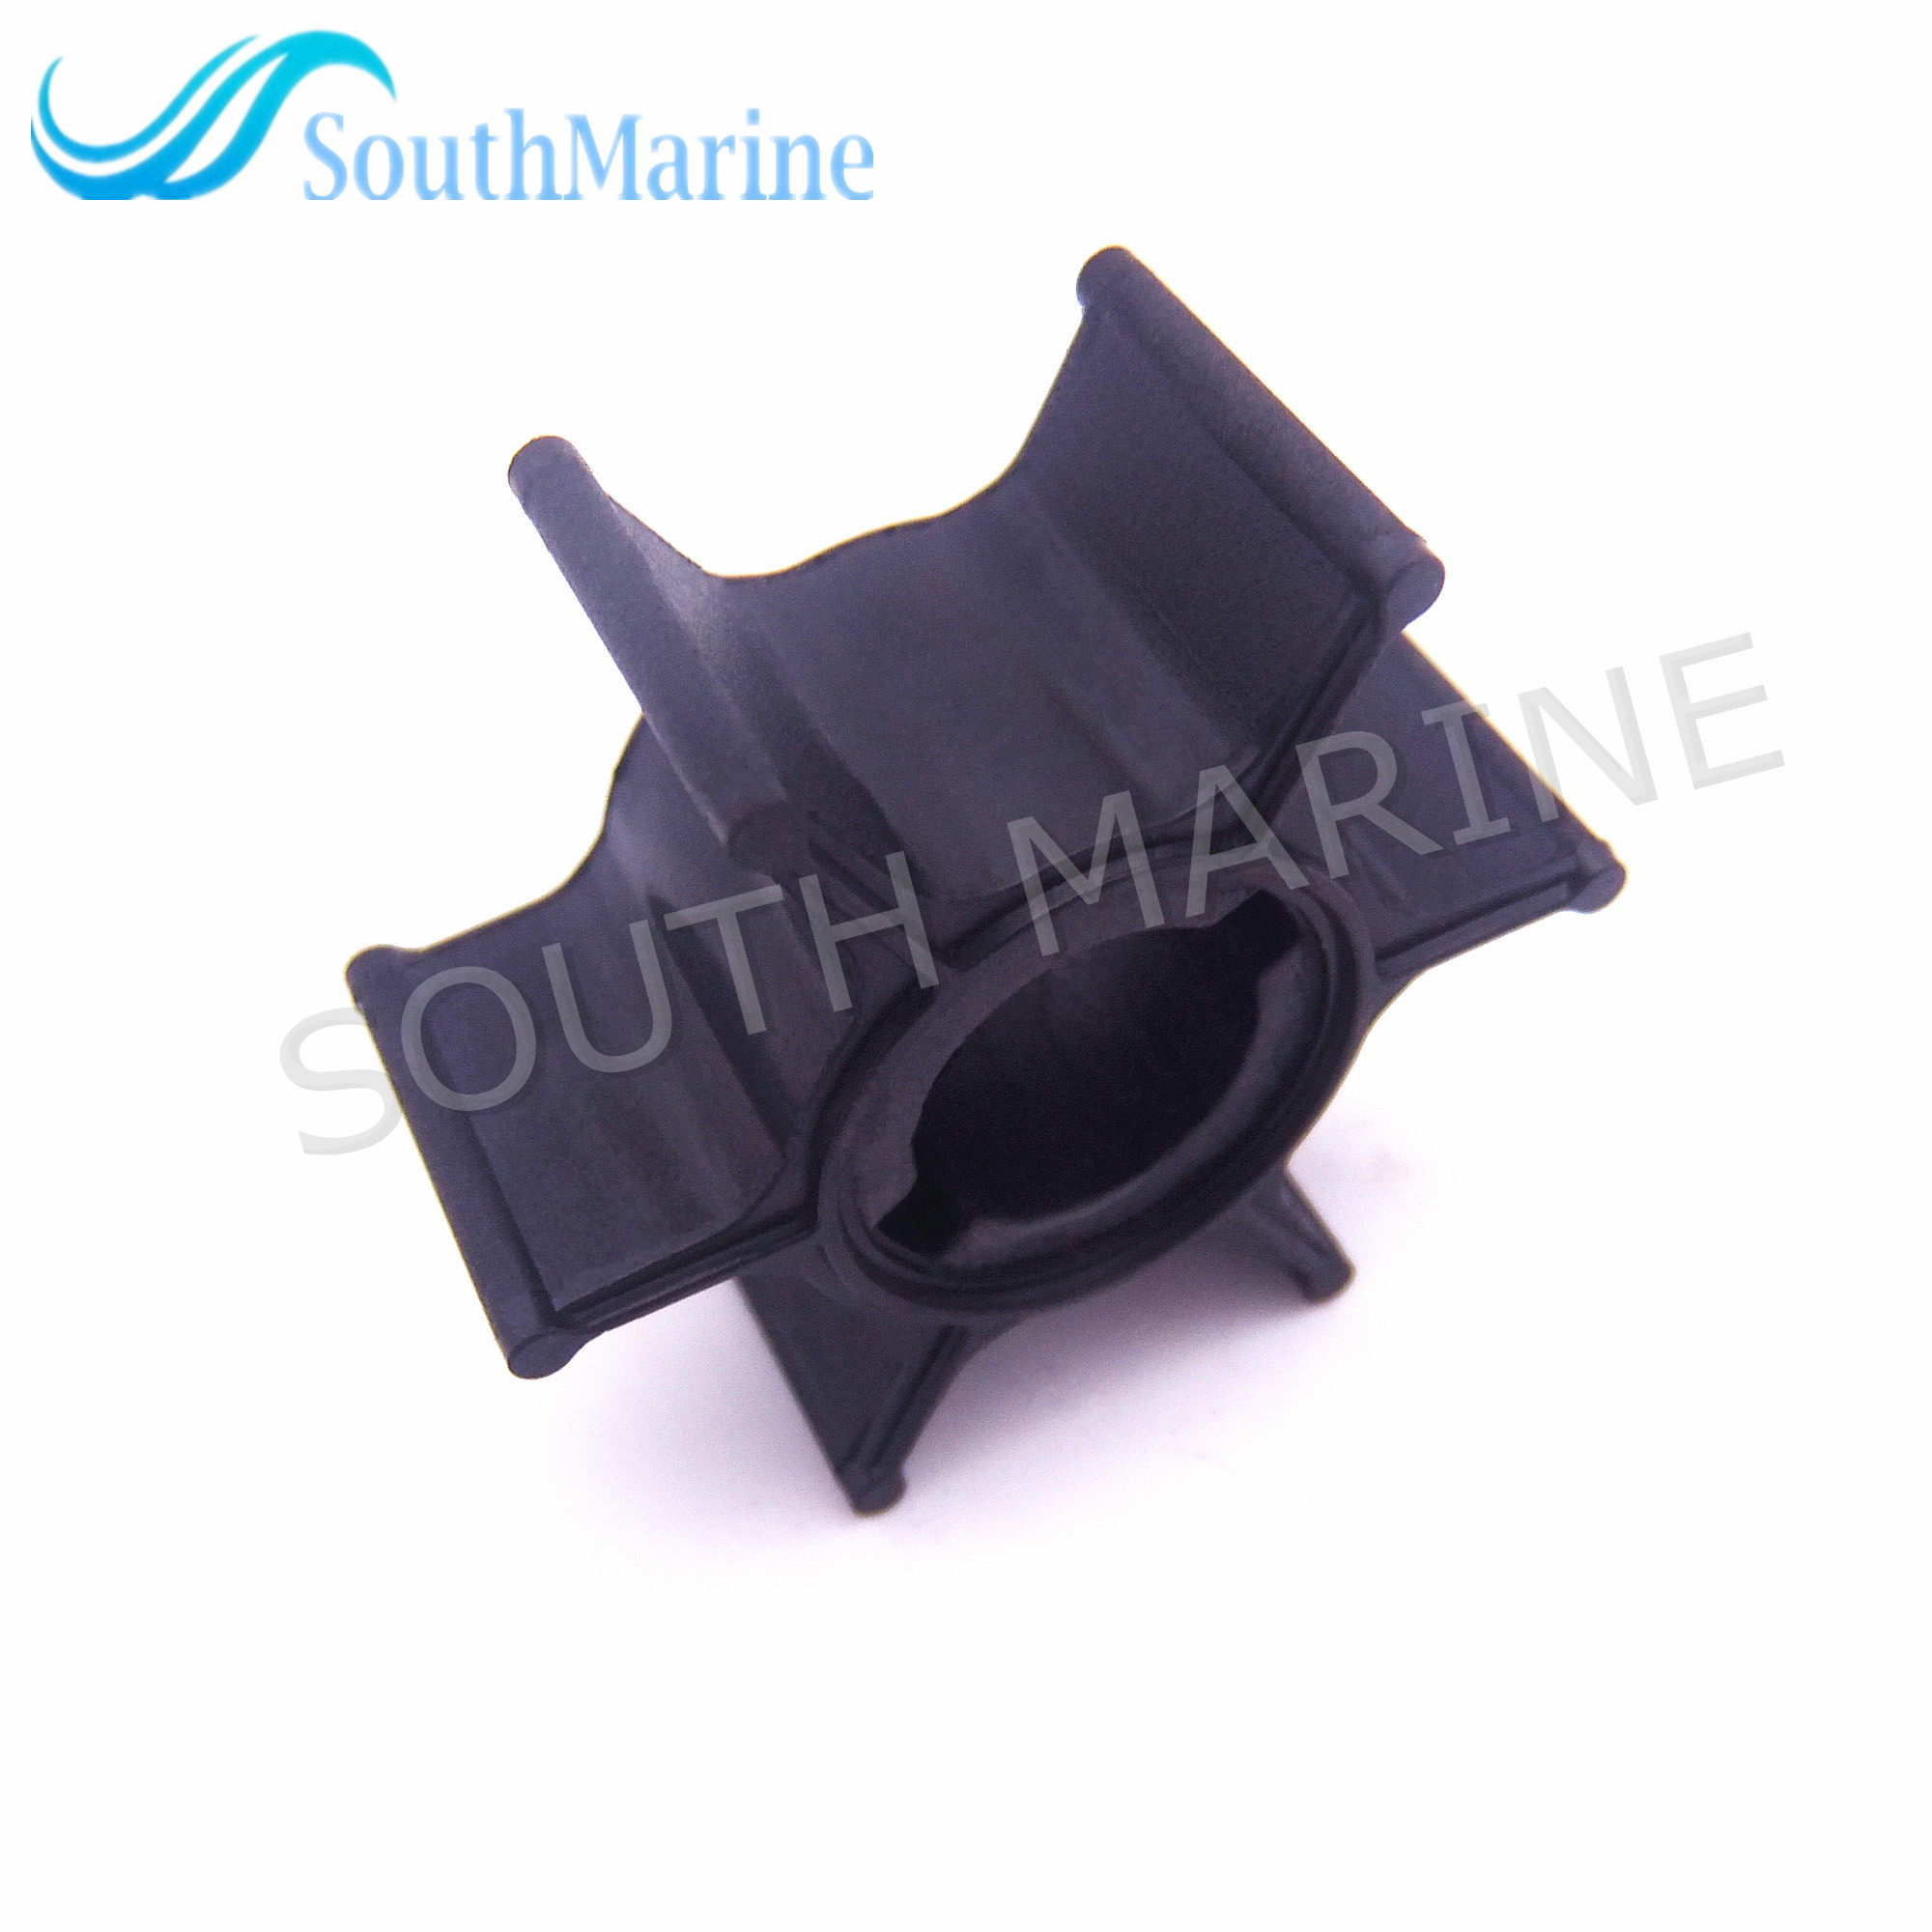 Boat Motor 17461-97JM0 Water Pump Impeller for Suzuki DF2.5  Outboard Engine Free Shipping